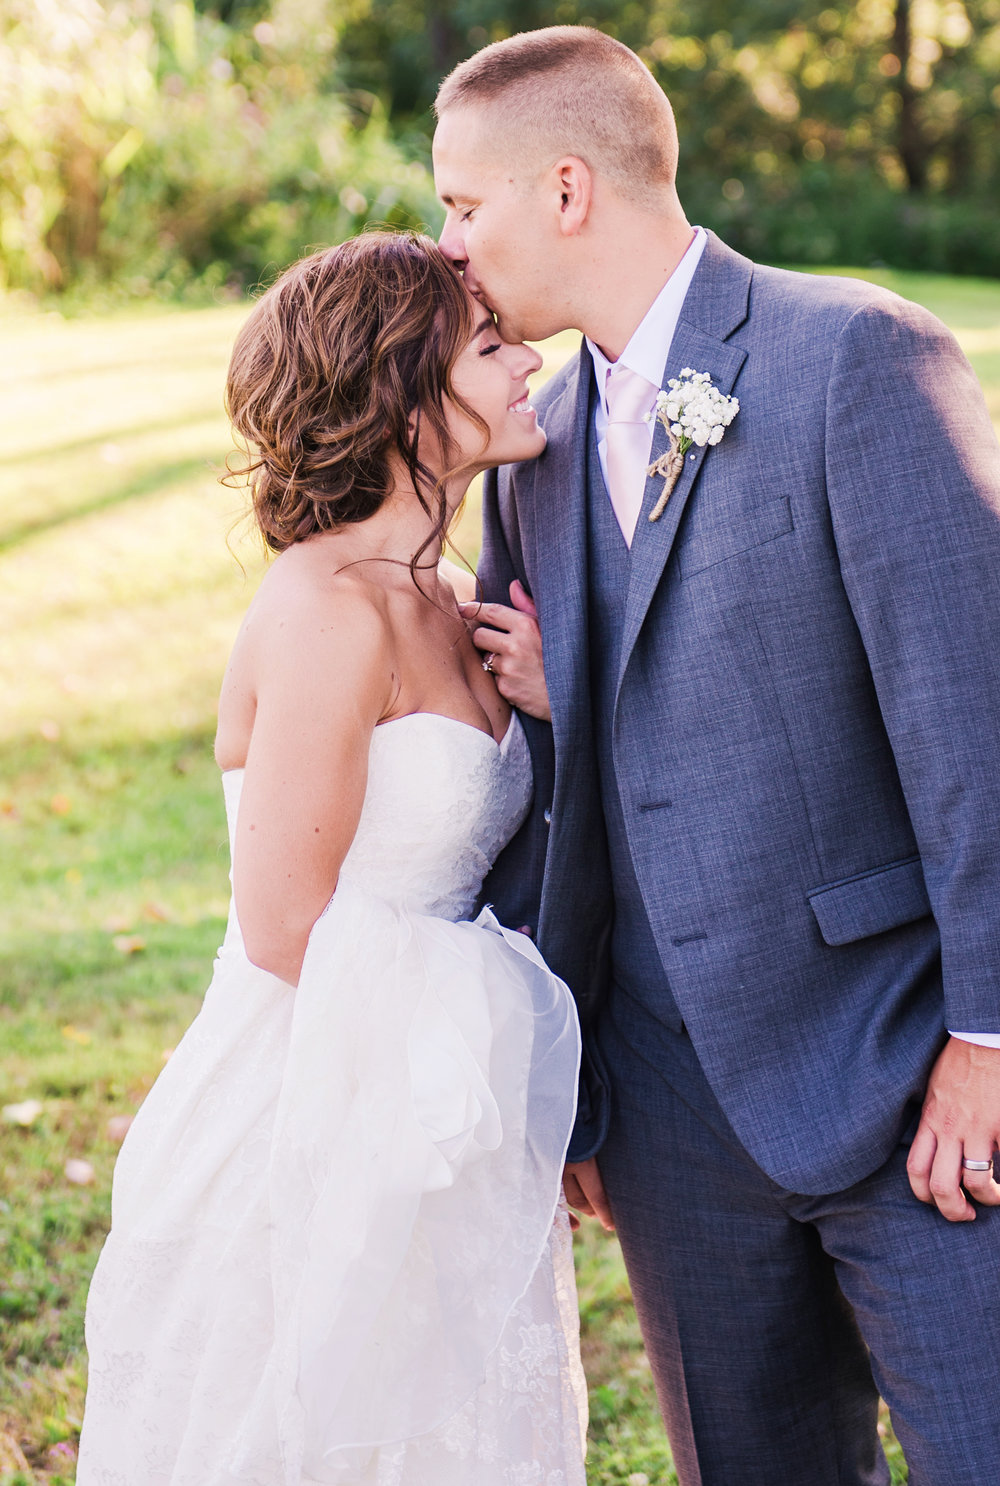 Wolf_Oak_Acres_Central_NY_Wedding_JILL_STUDIO_Rochester_NY_Photographer_DSC_5453.jpg